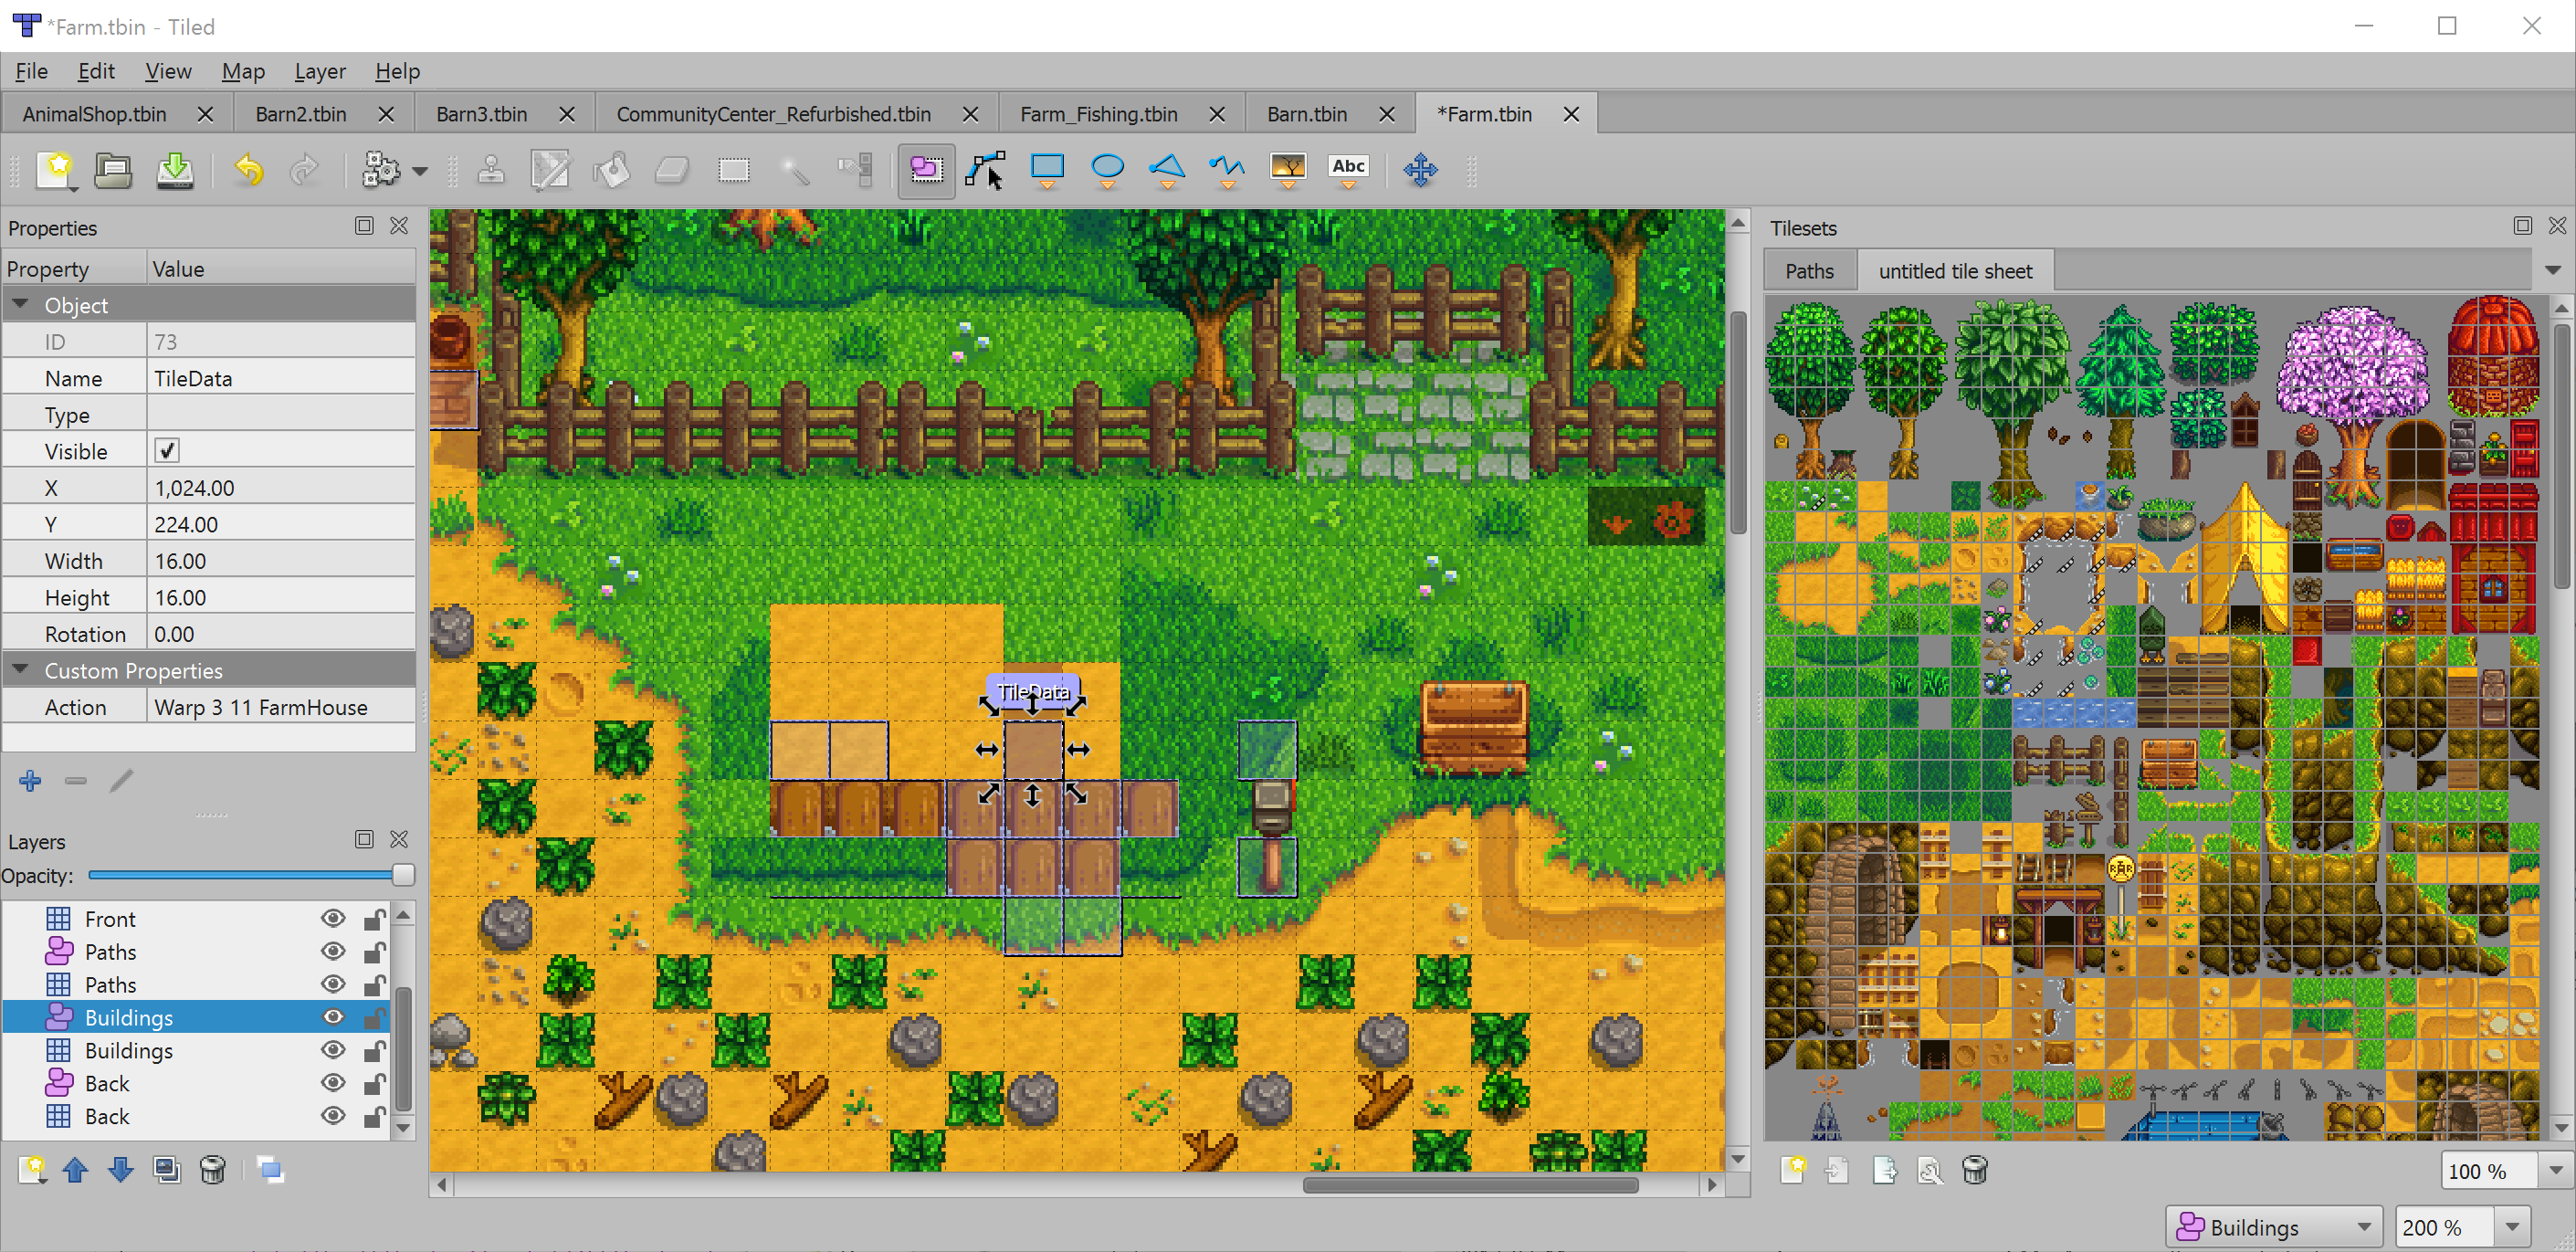 Stardew Valley Modding Update and Other Stuff - Tiled Map